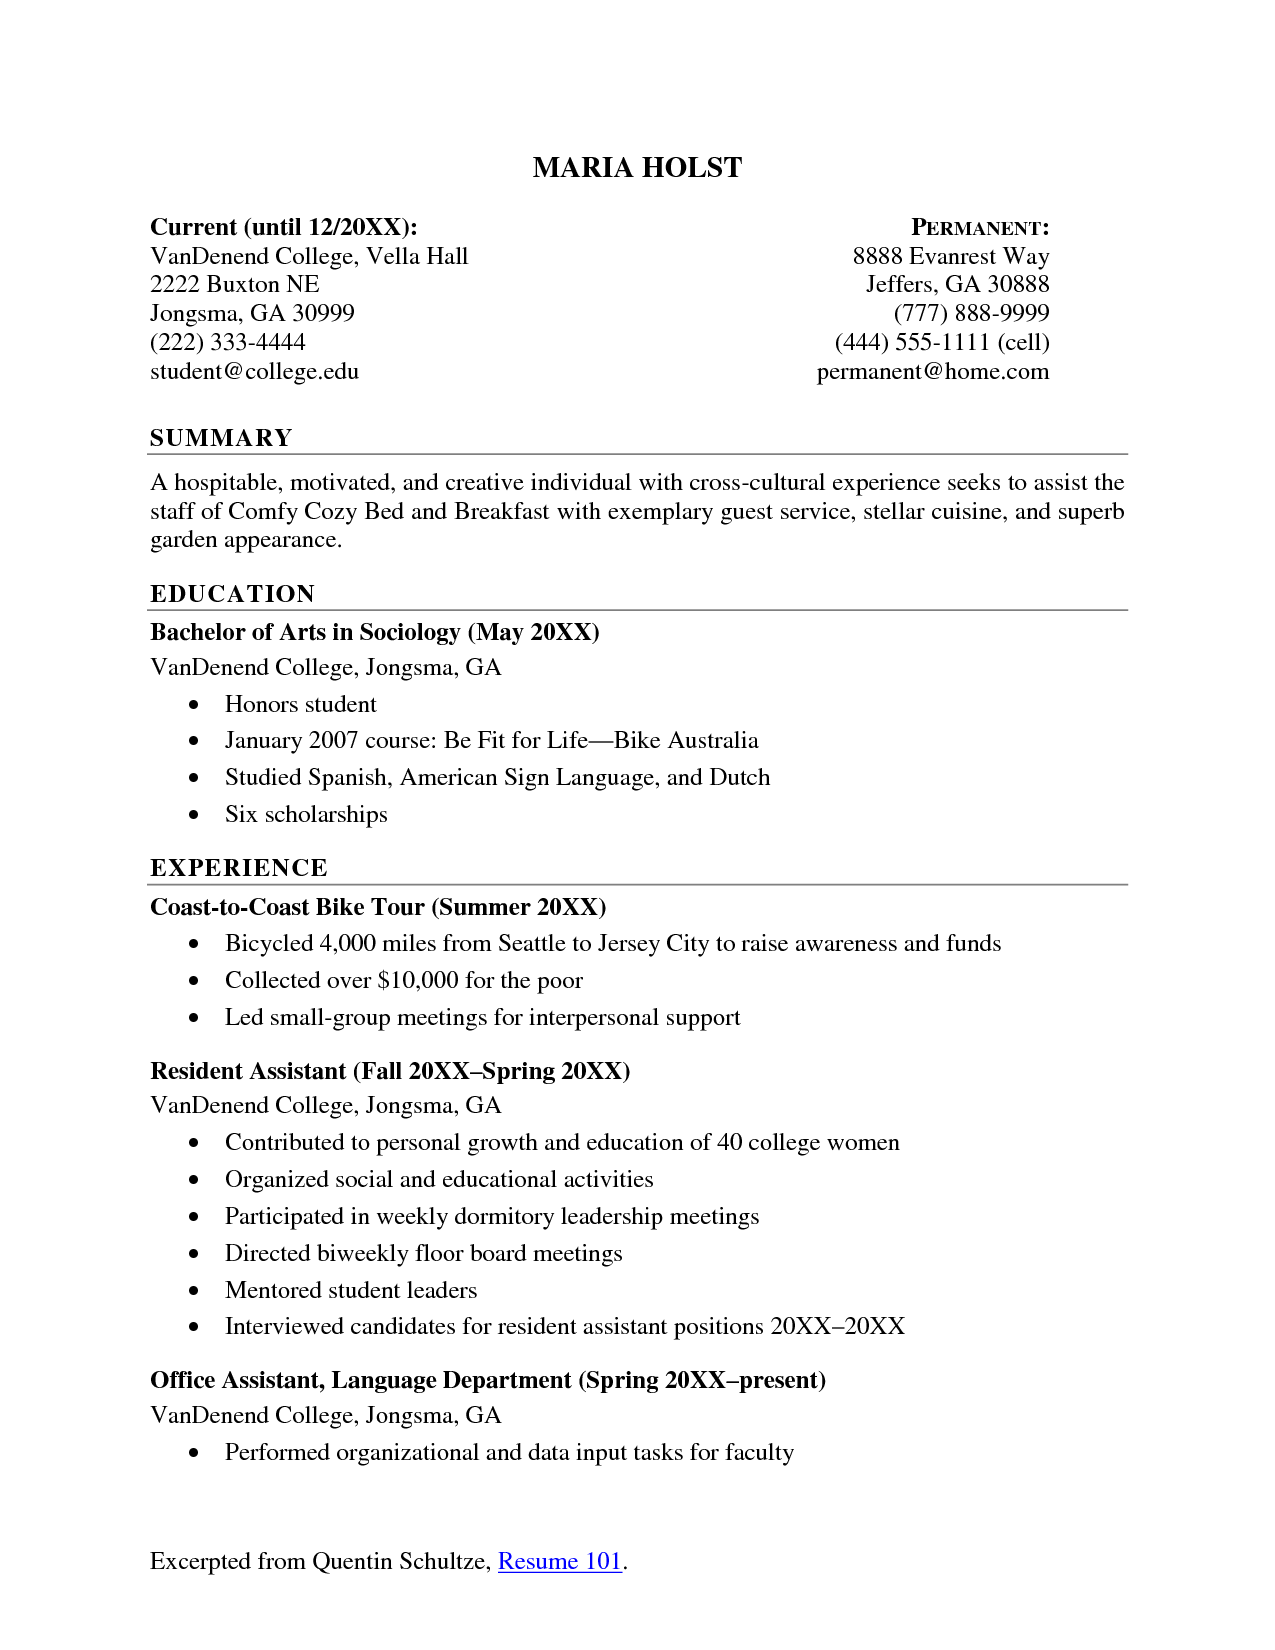 College Student Resume Example Sample Classifiedsfree HigzUHPt